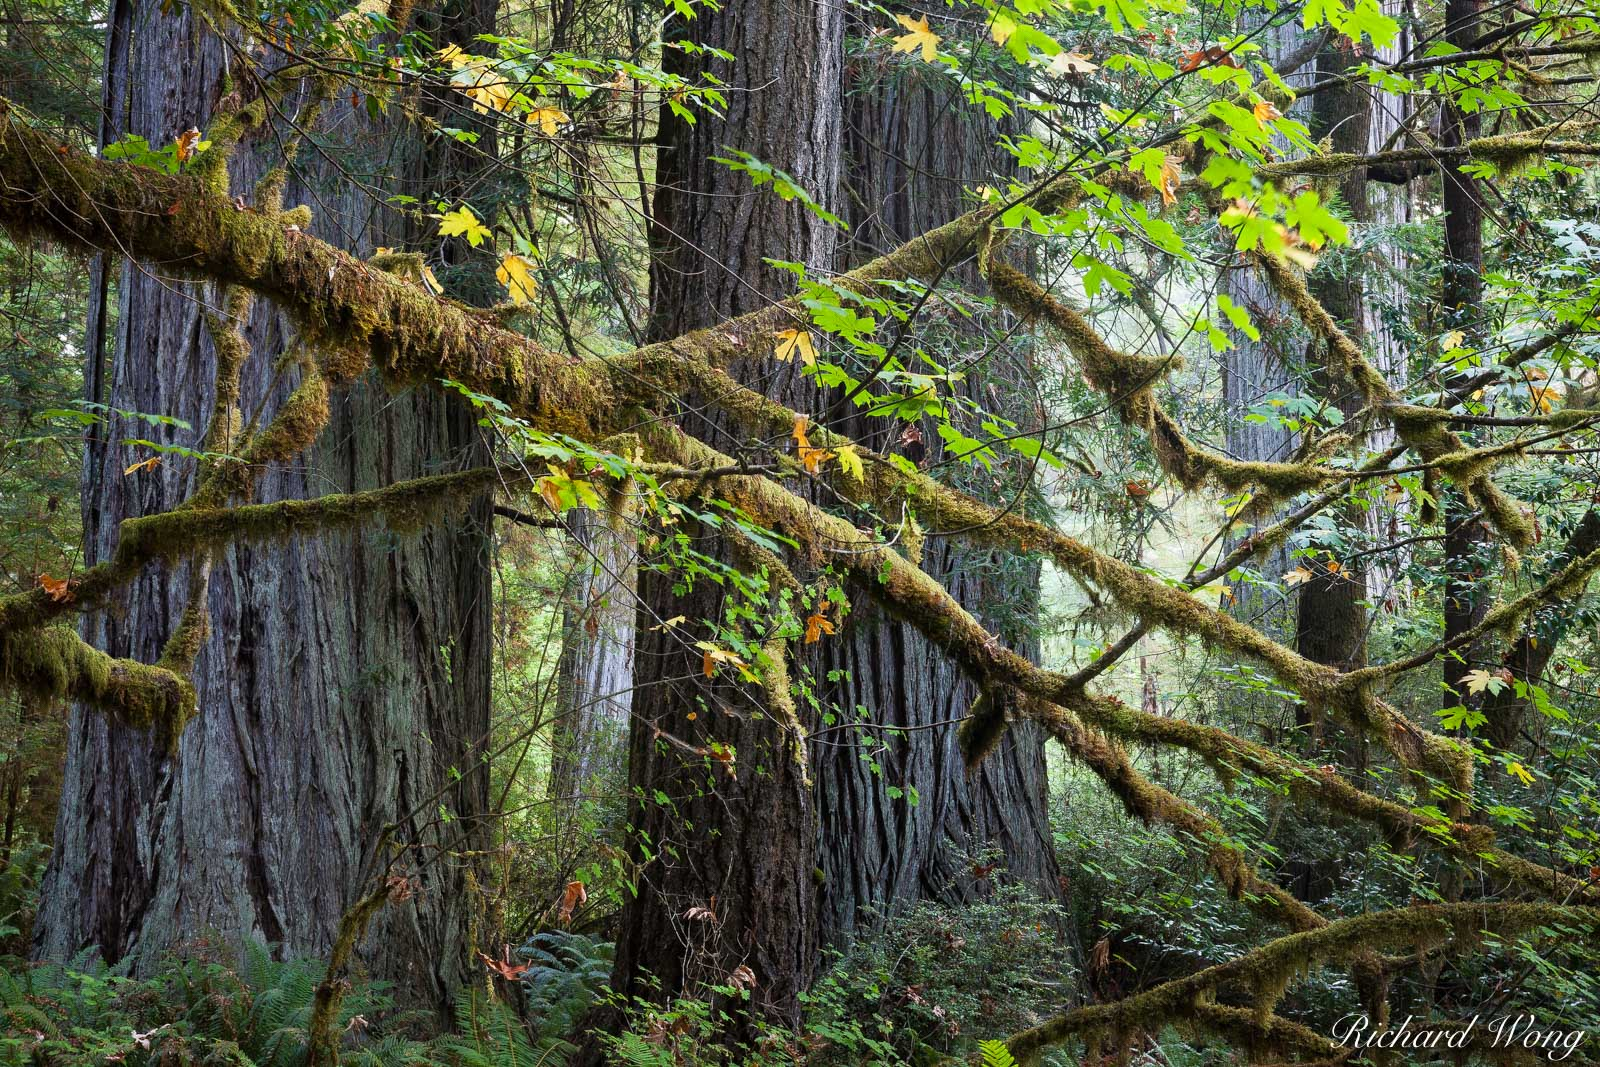 Humboldt County, autumn leaves, fall colors, landscape, lichen, moss, nature, northern california, old-growth redwood forest, outdoors, outside, prairie creek redwoods state park, scenic, seasons, tre, photo